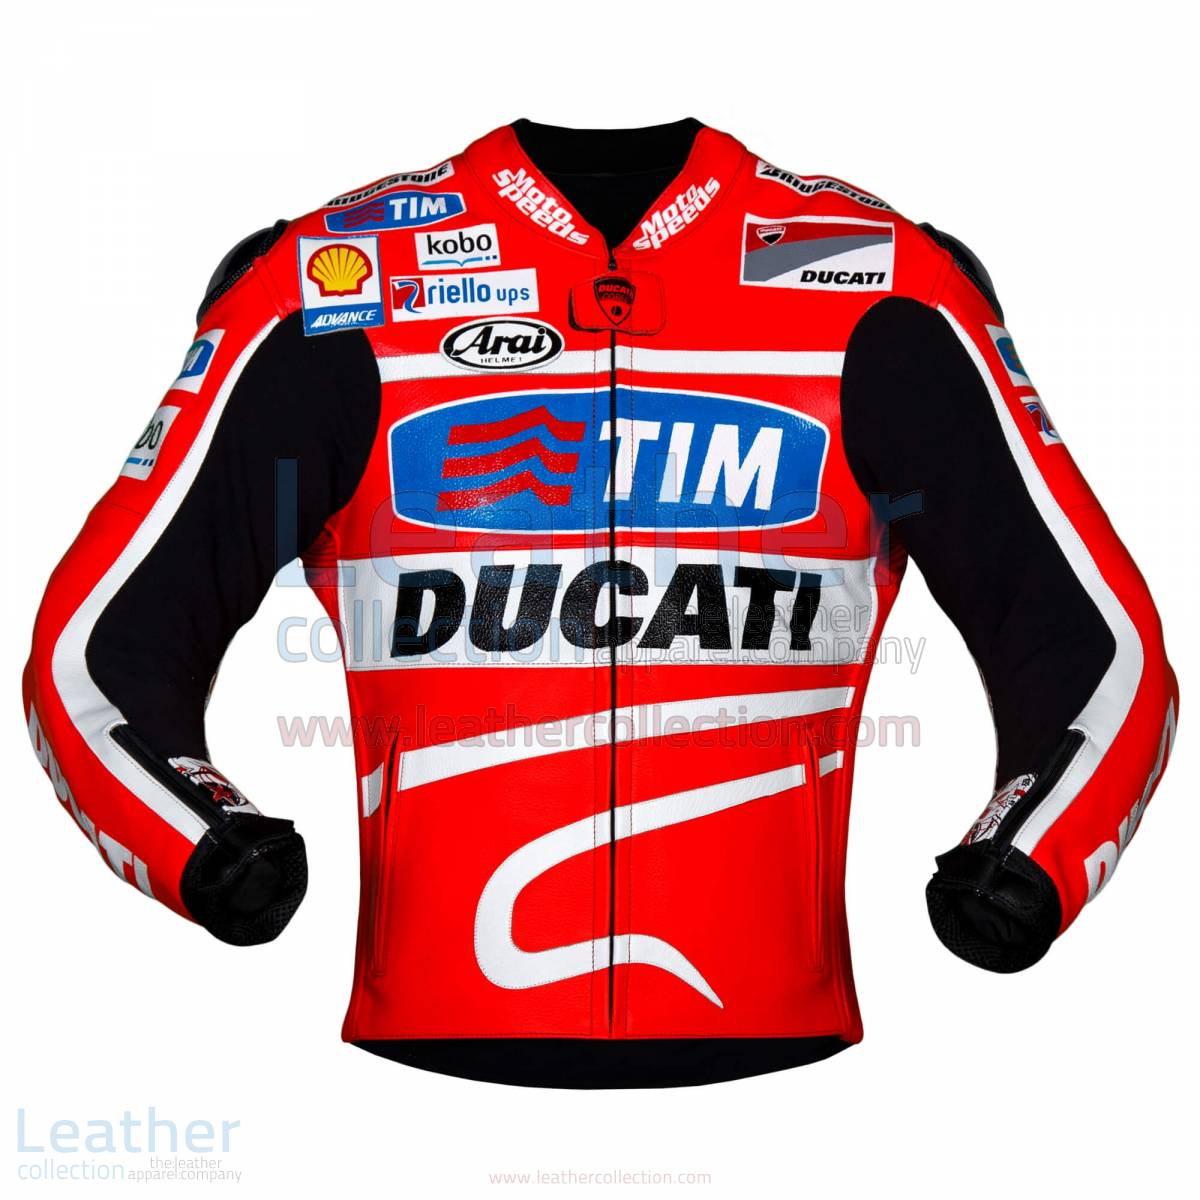 Nicky Hayden 2013 MotoGP Ducati Leather Jacket